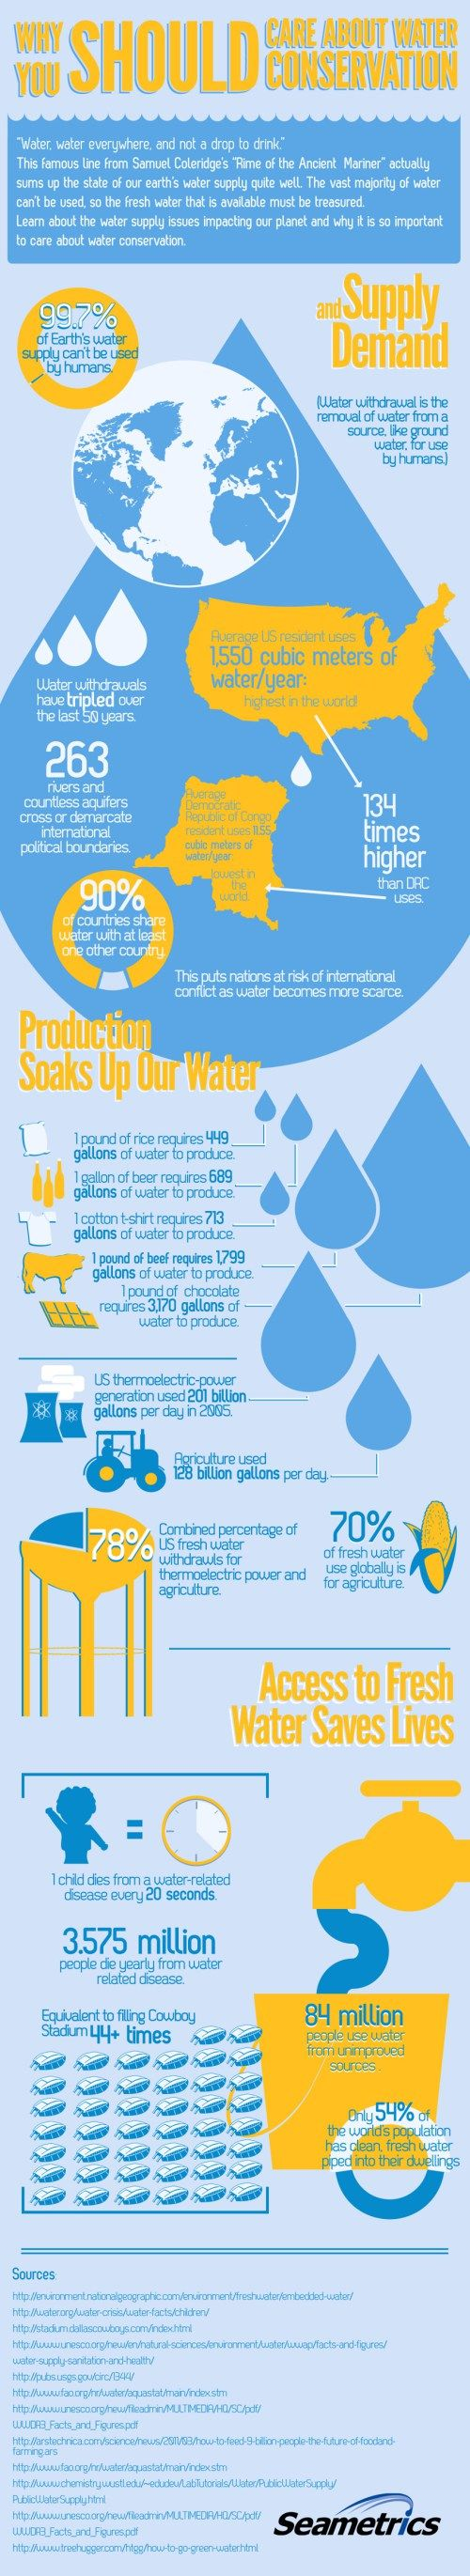 Celebrate World Water Day with games and activities for all ages! Check out the stats, videos, worksheets and more for World Water Day.